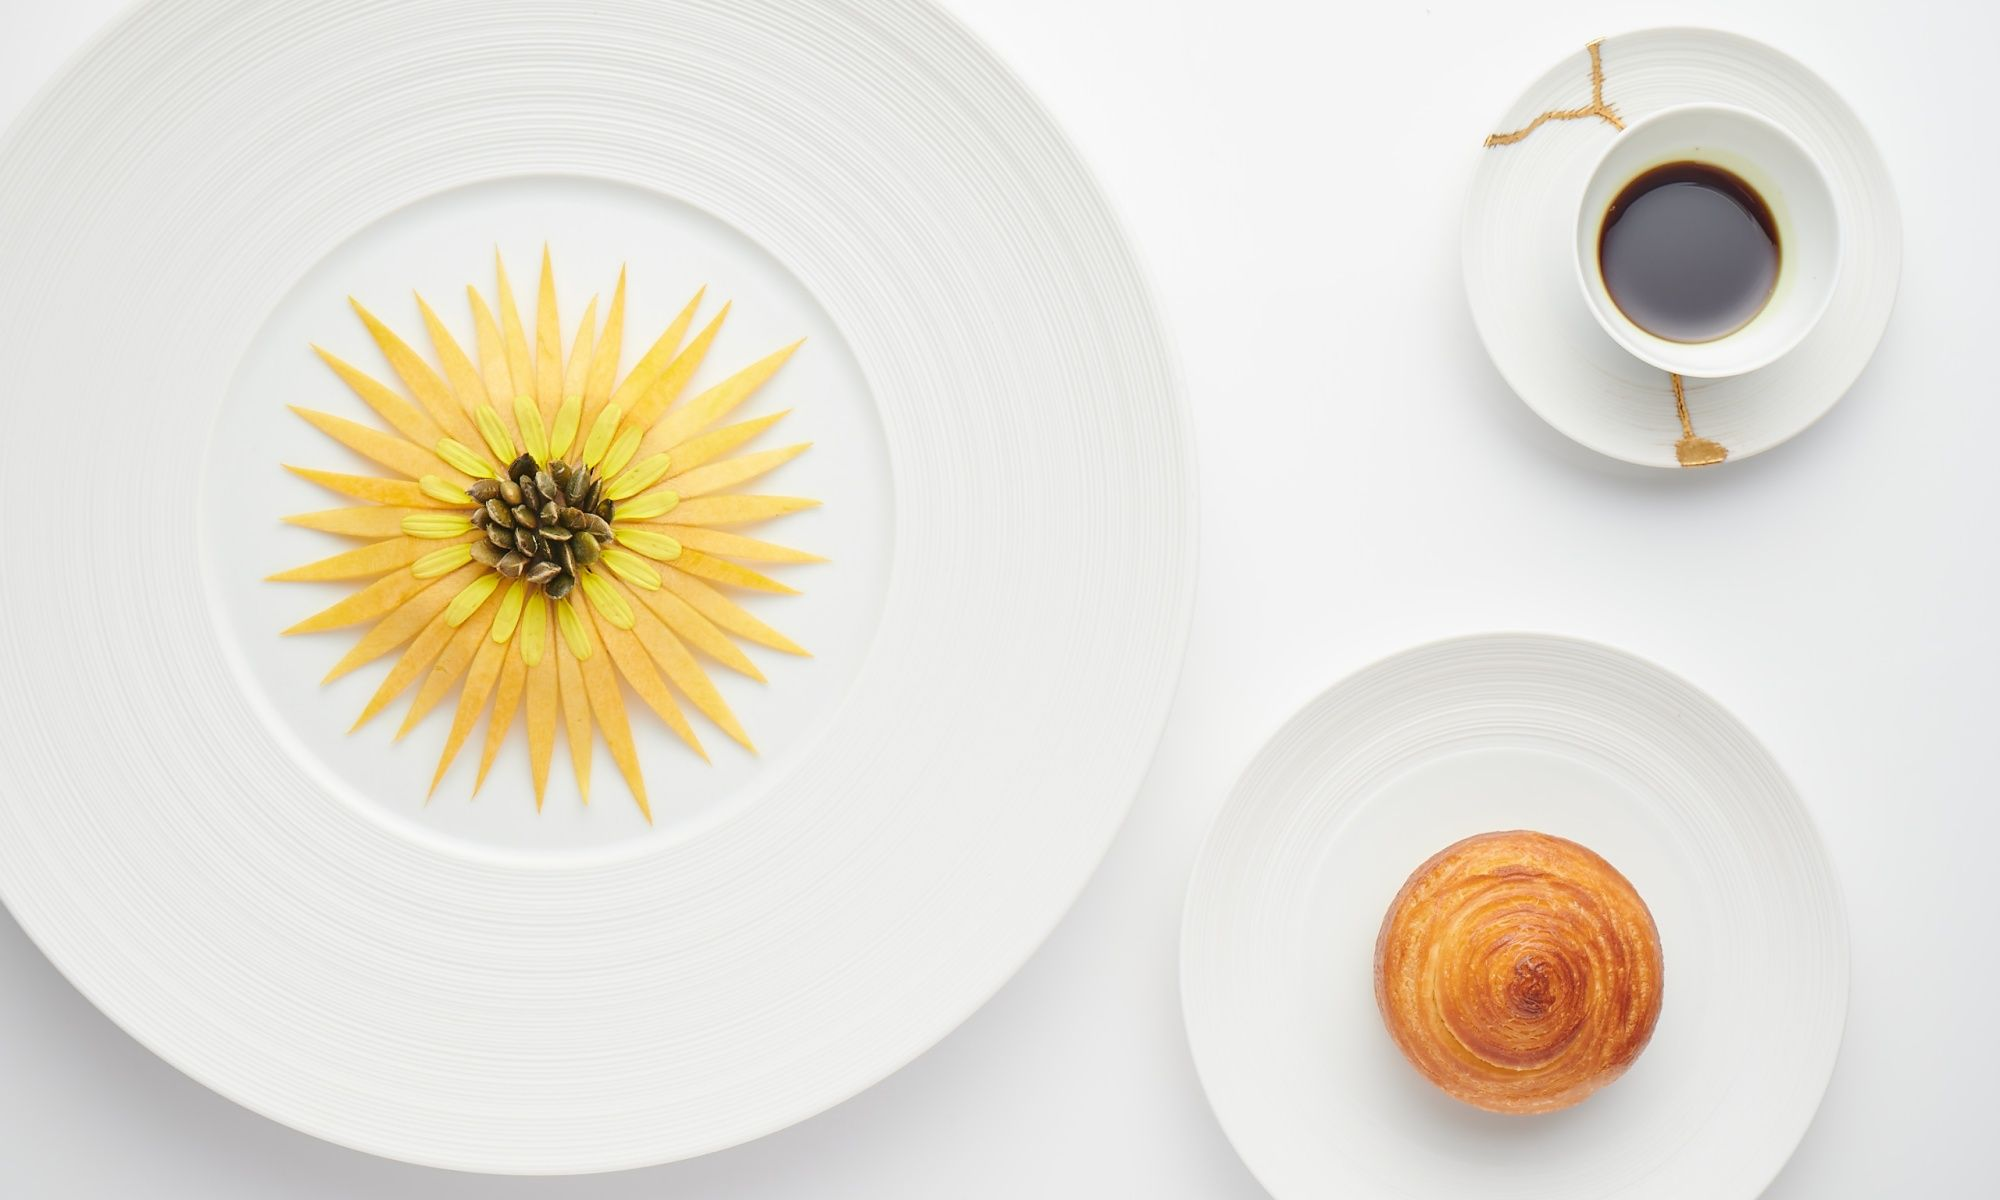 Petrus Welcomes Spring With New Organic Menu